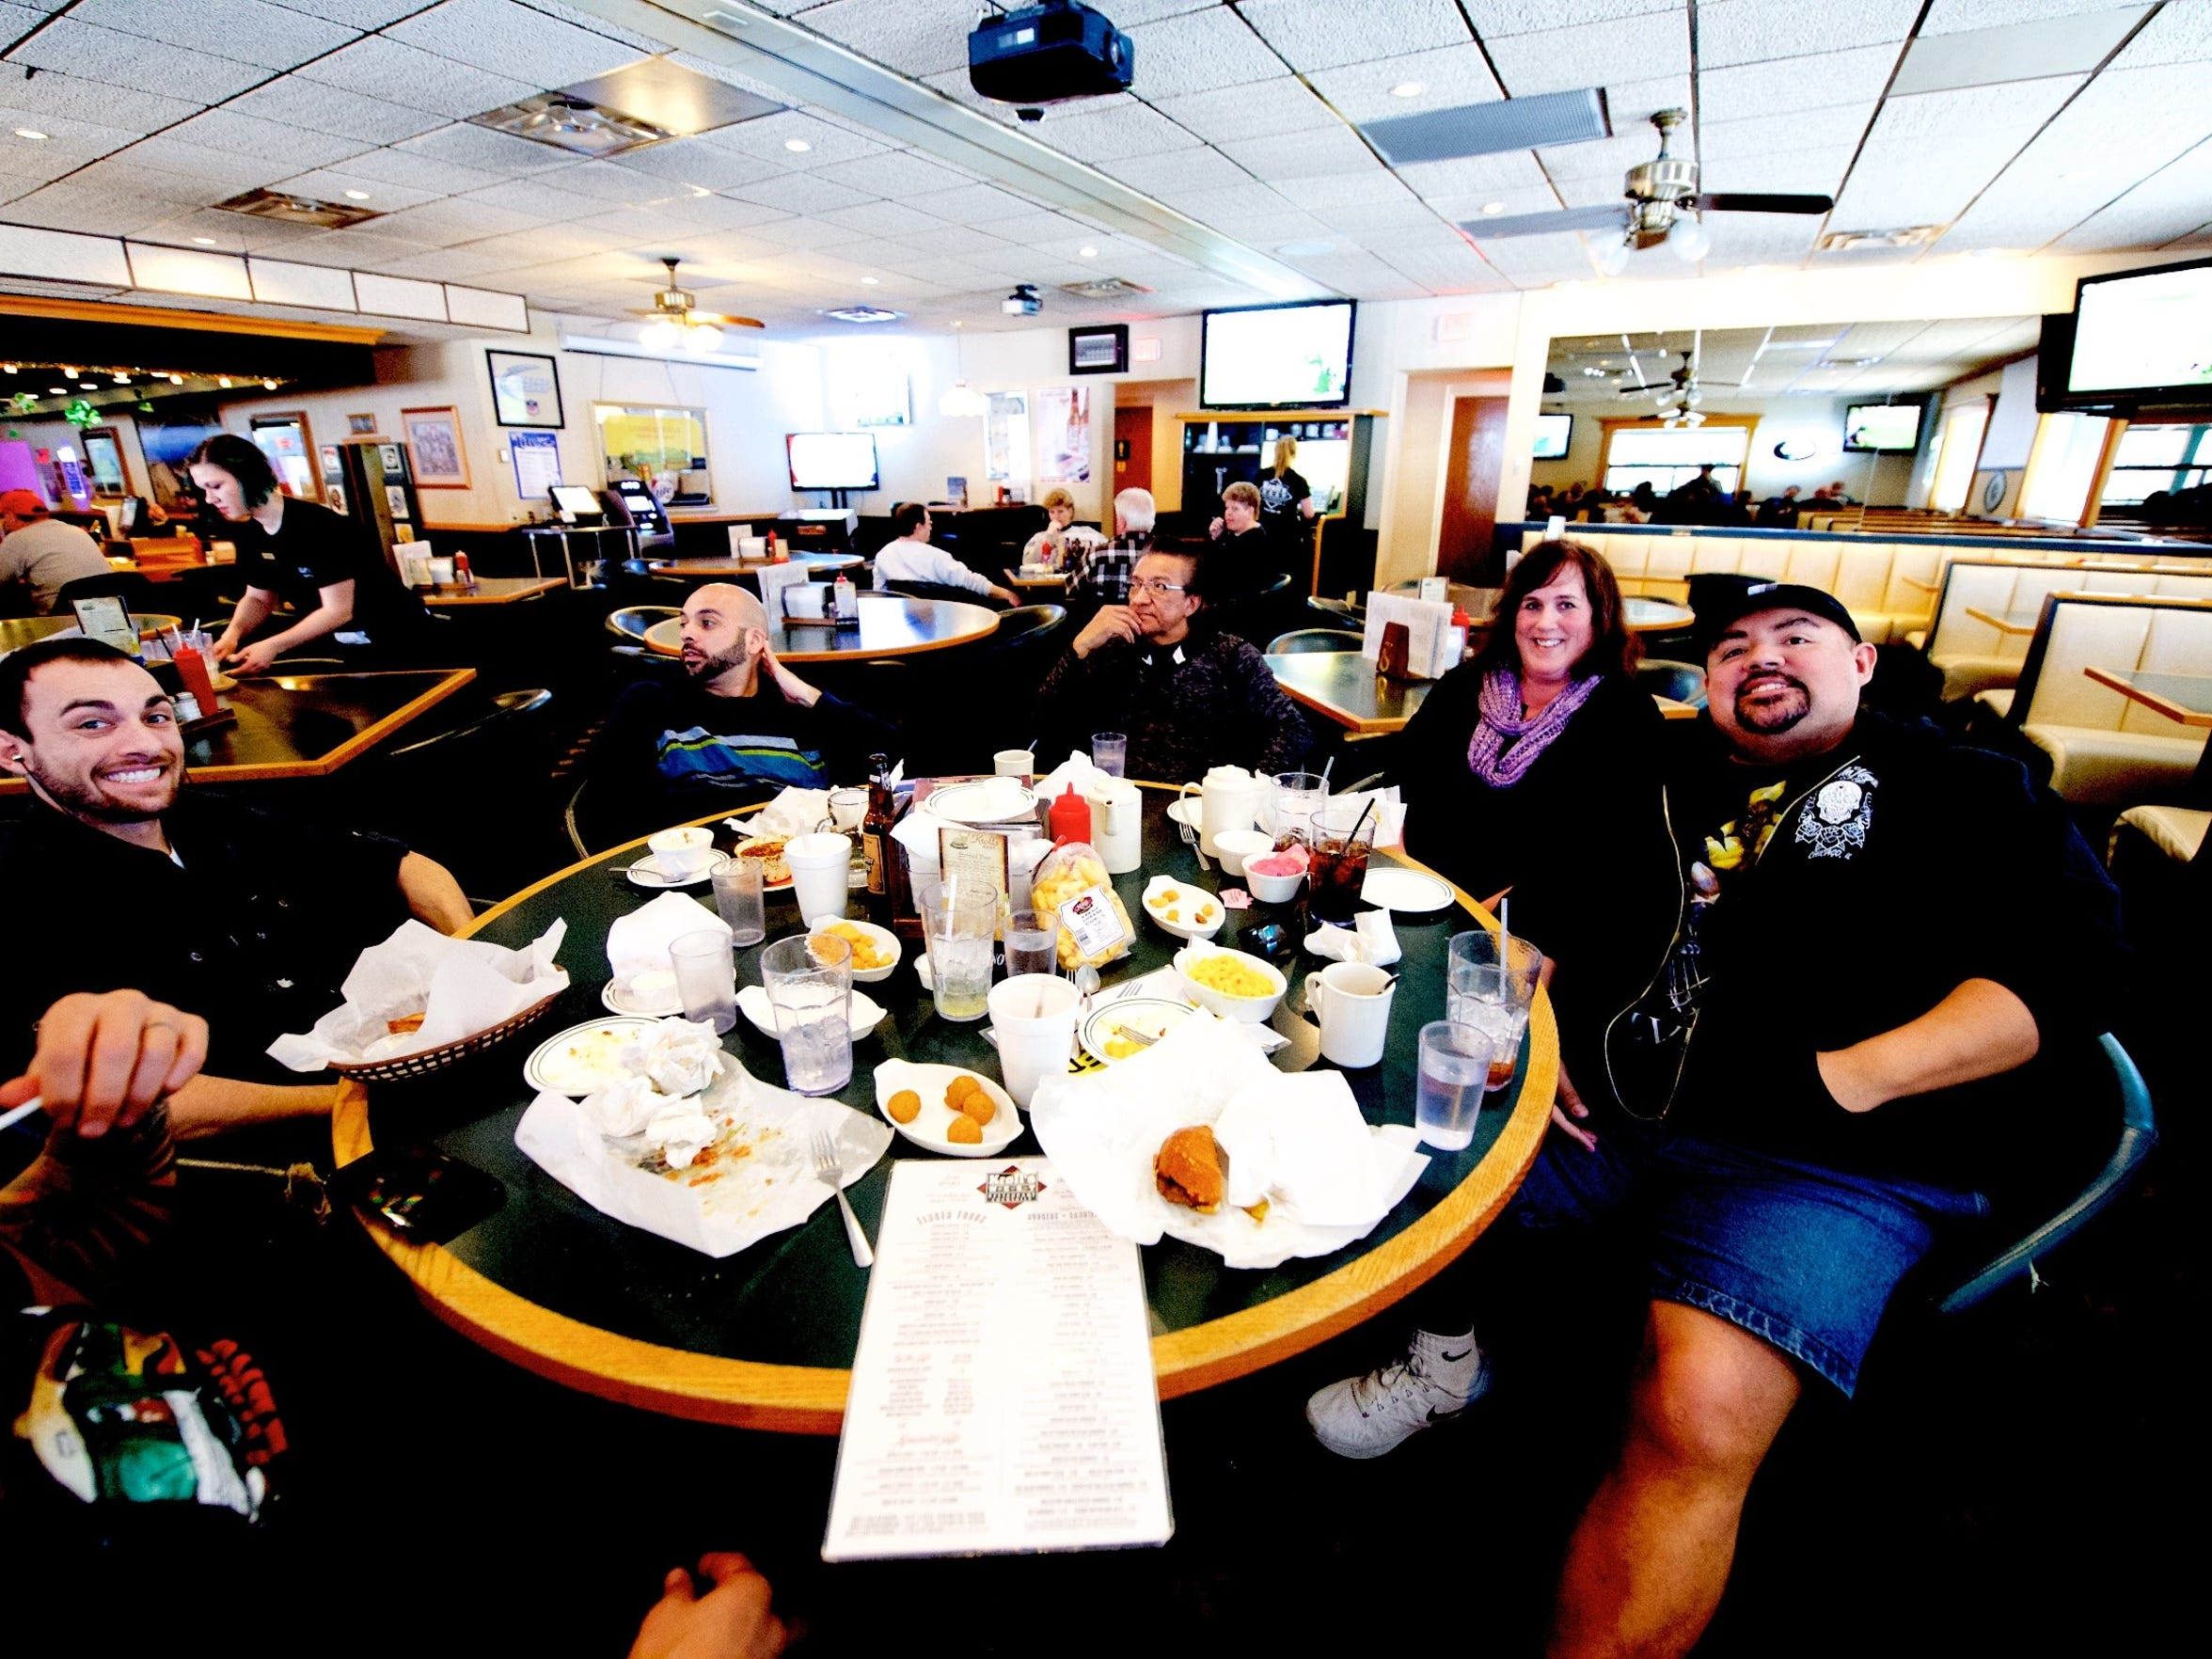 Comedian Gabriel Iglesias and his crew enjoyed some down time between Weidner Center shows while having lunch together at Kroll's West.